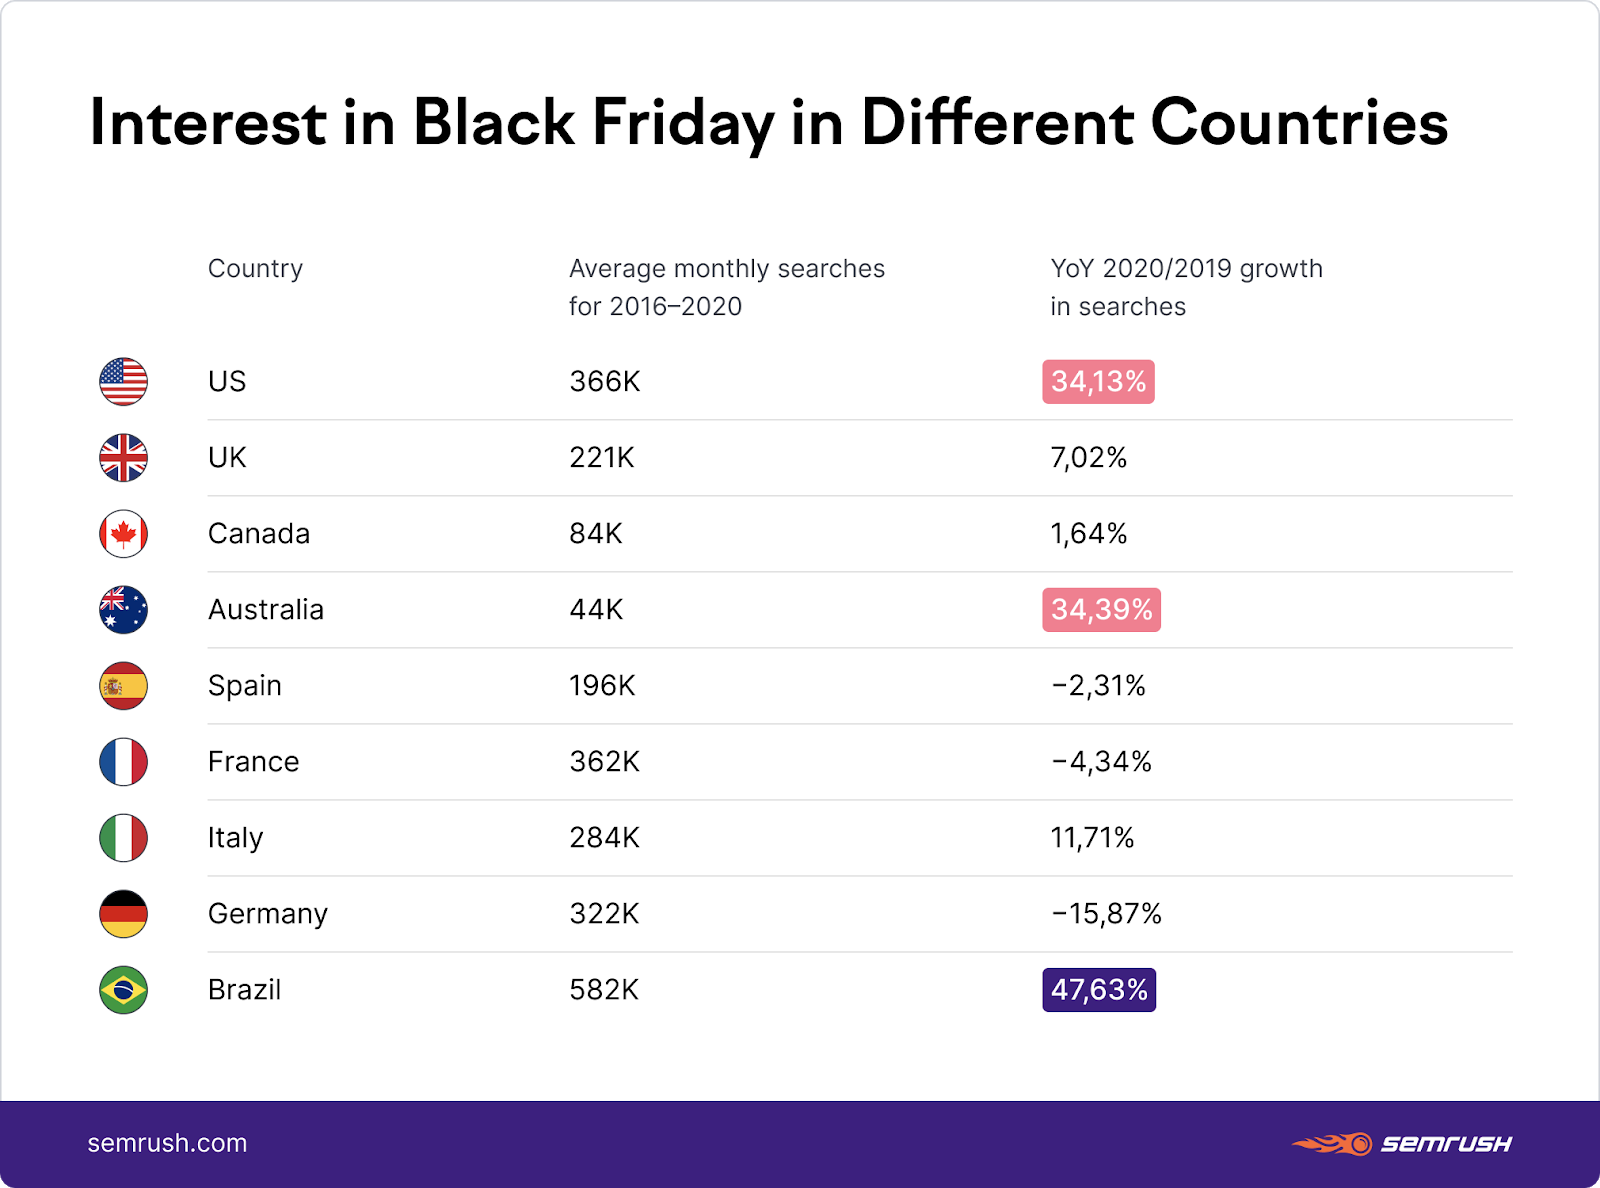 Interest in Black Friday in different countries